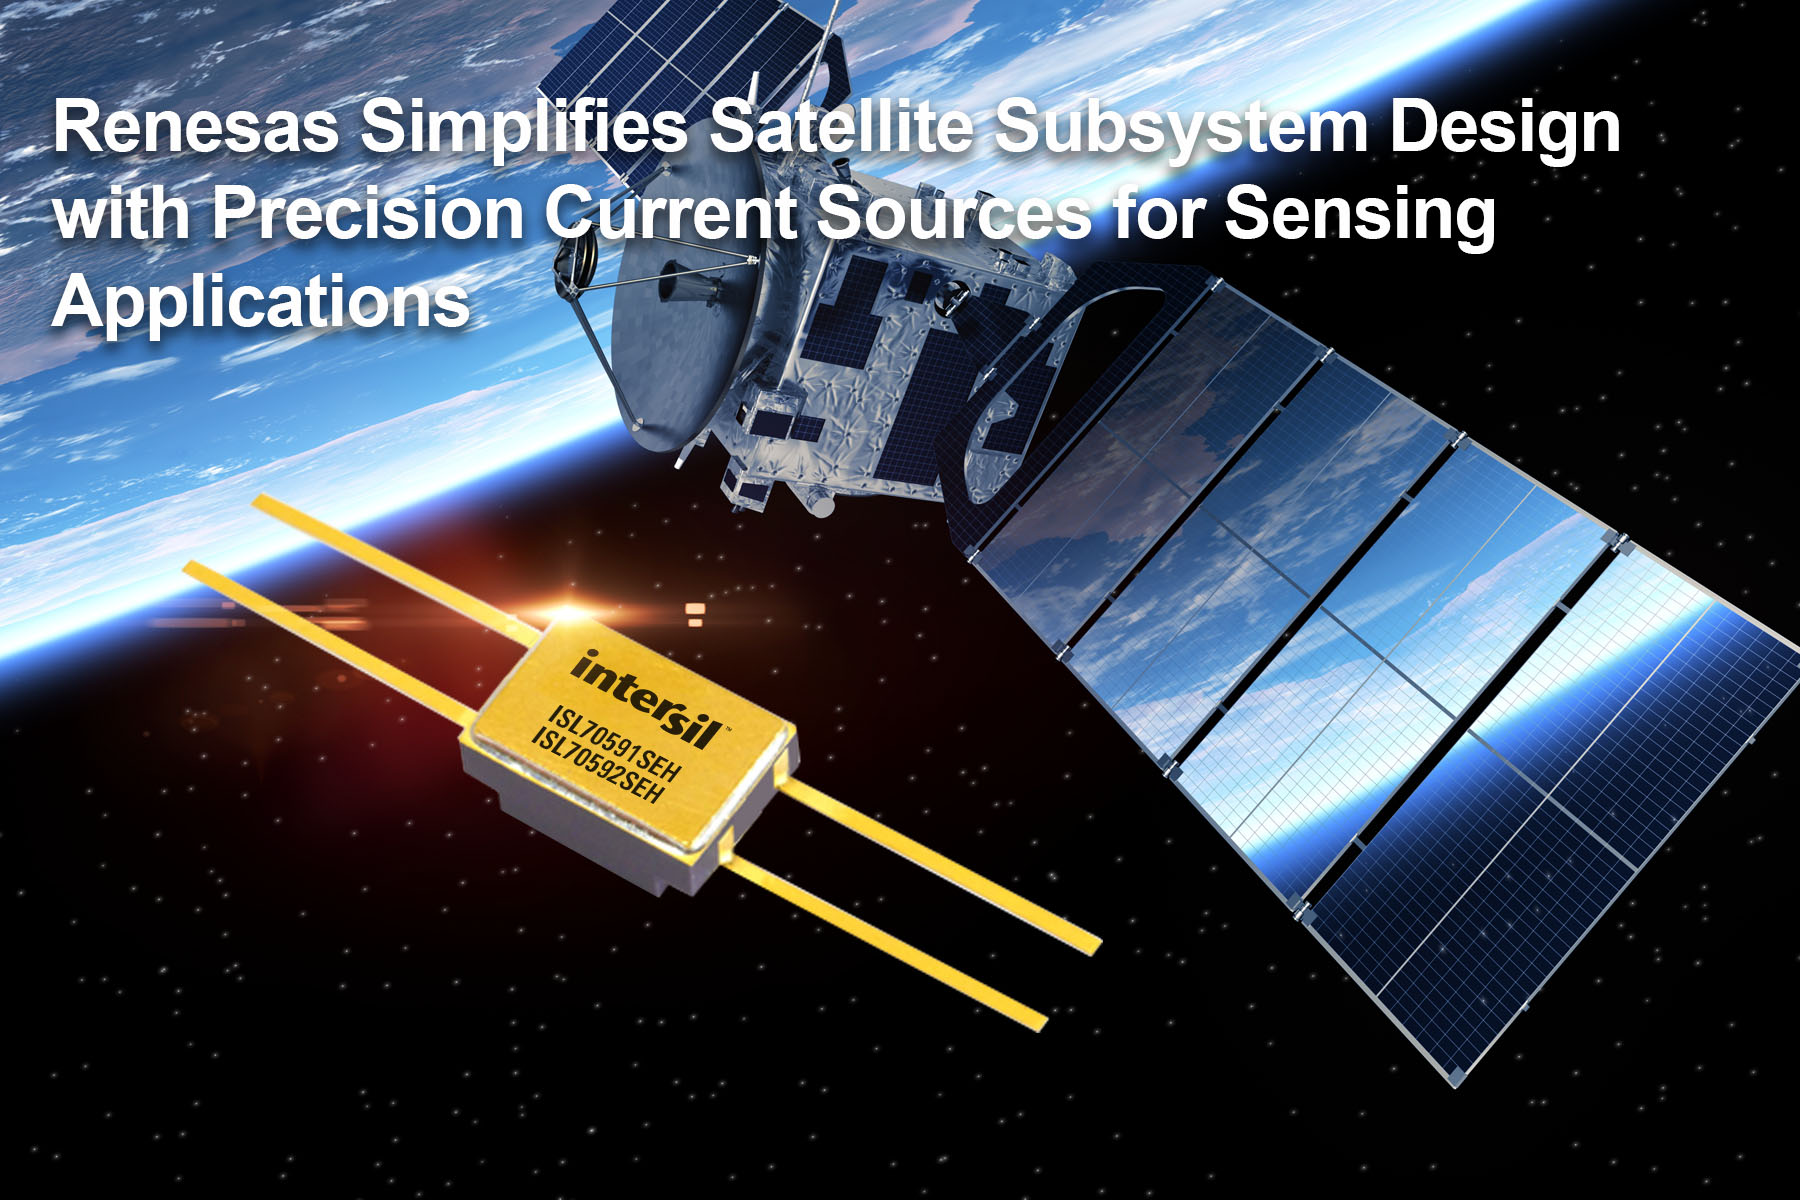 Renesas Electronics Simplifies Satellite Subsystem Design